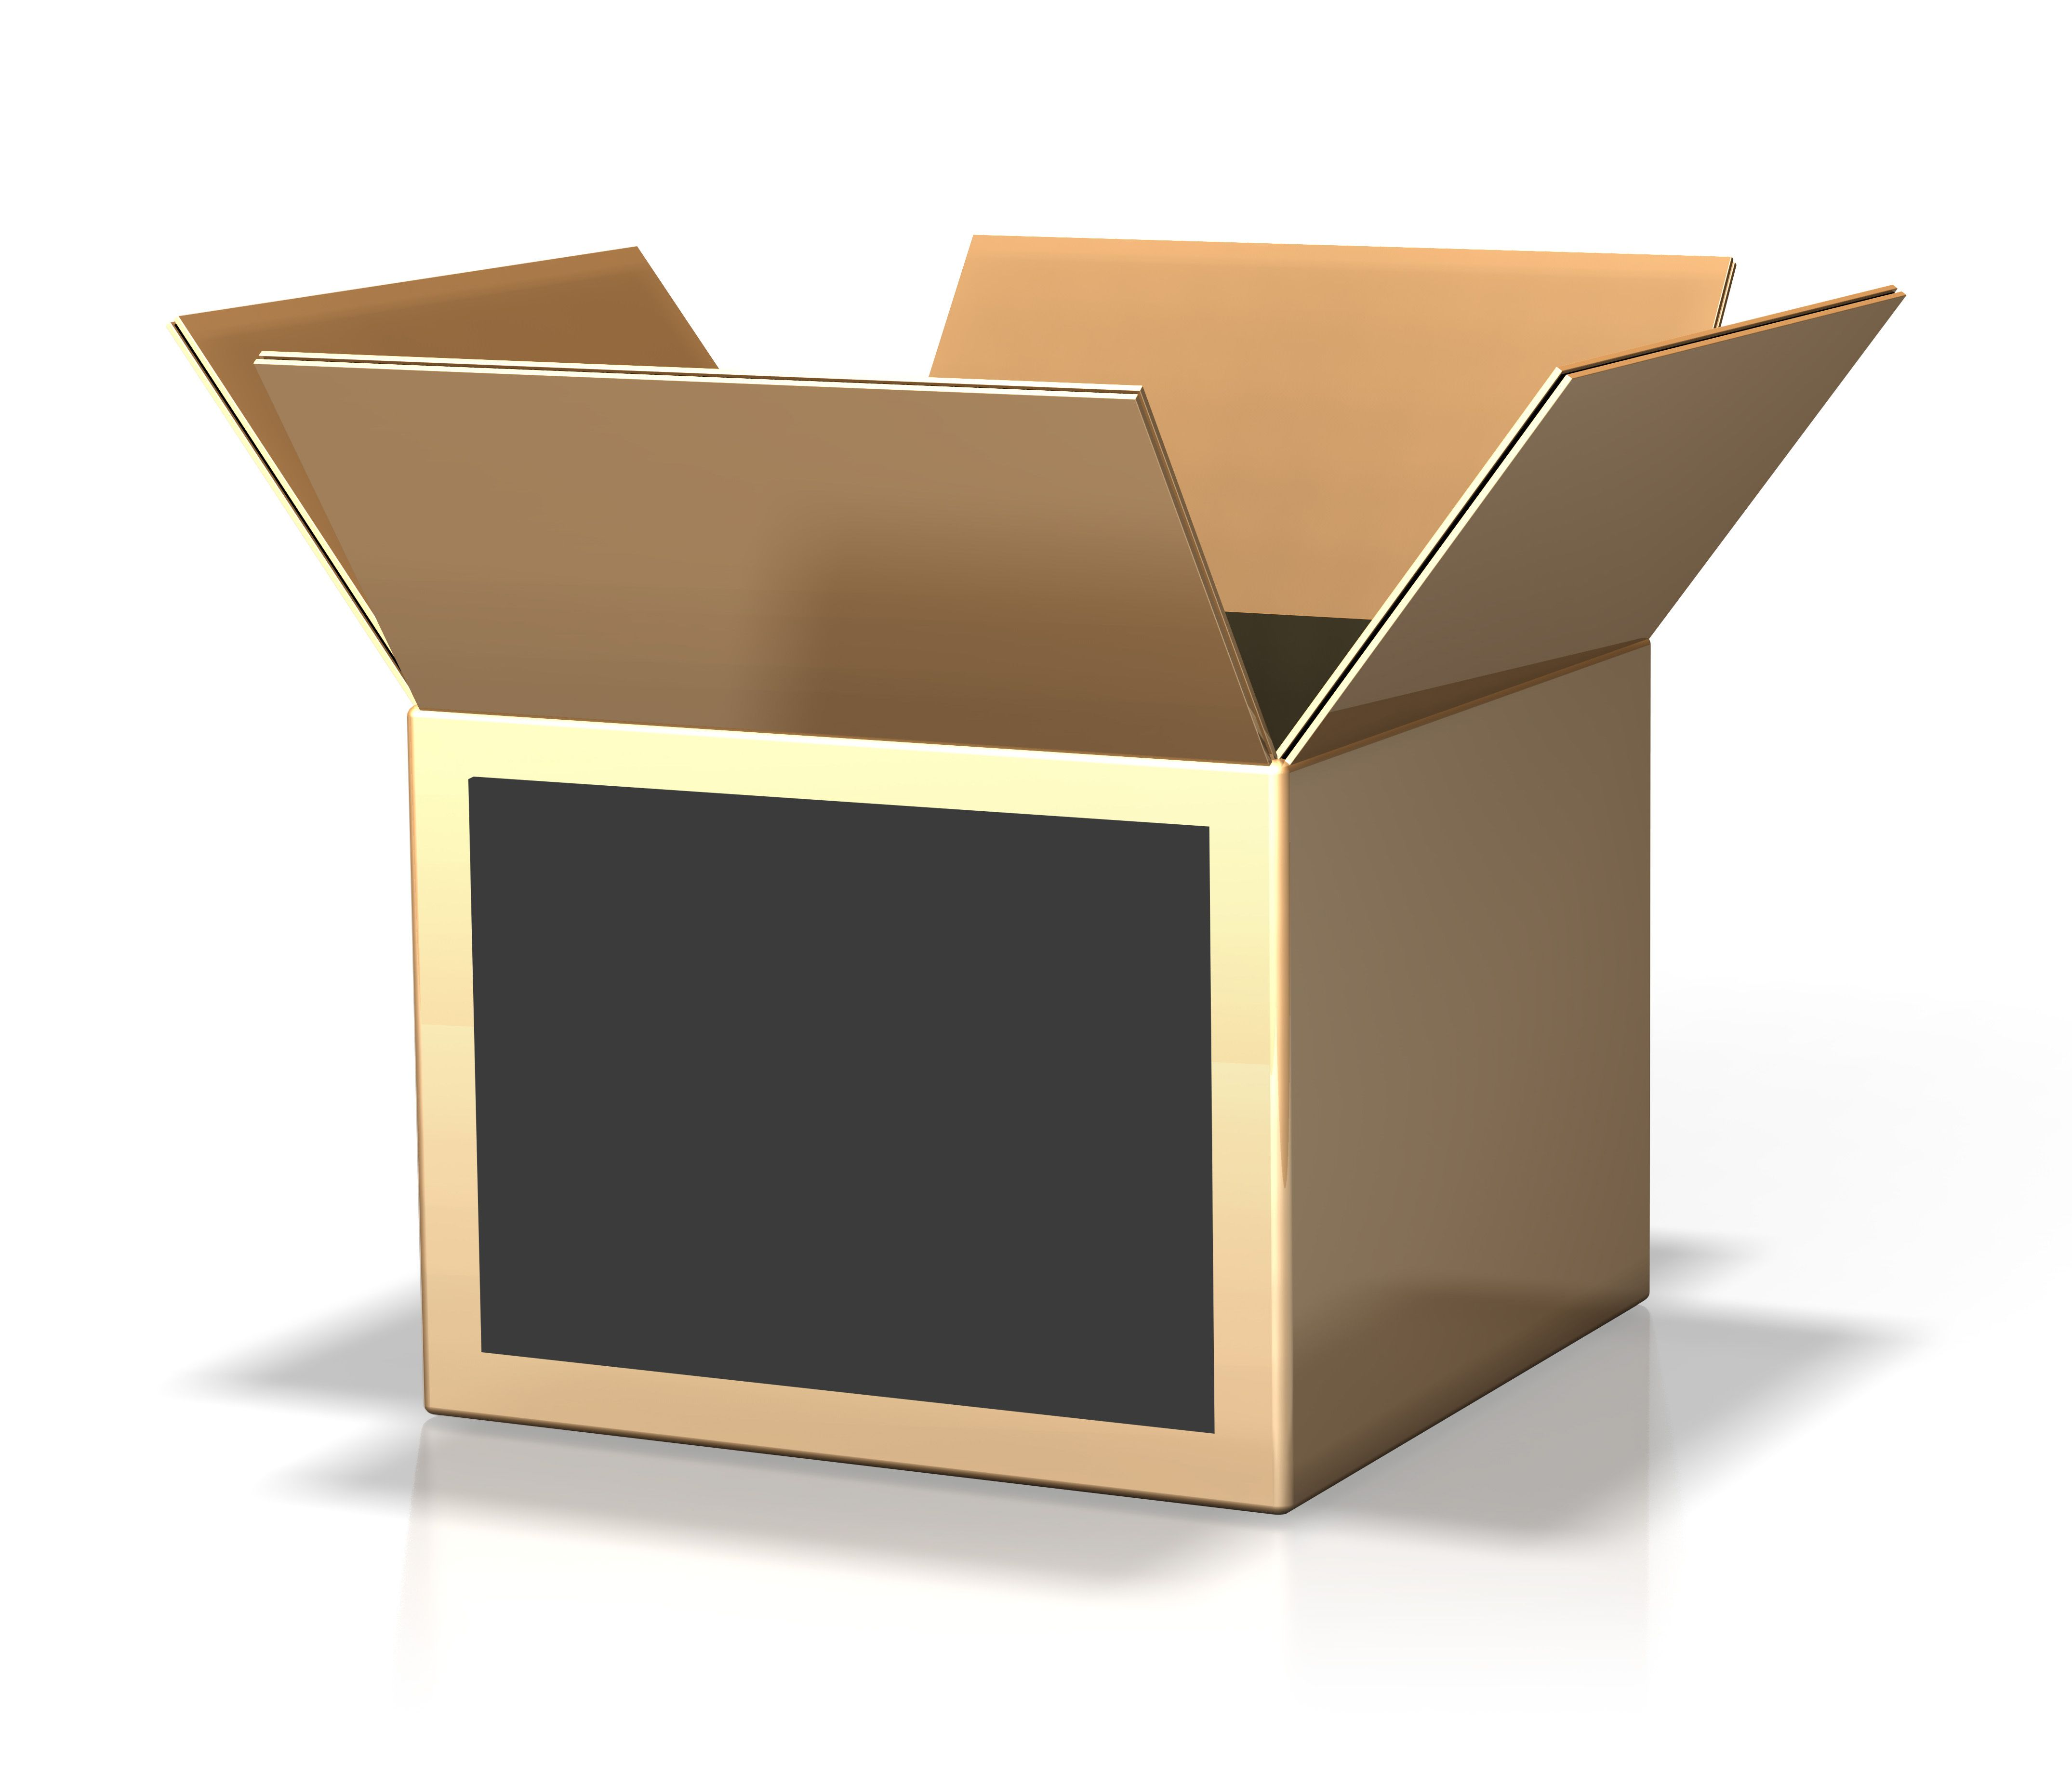 Open Cardboard Box Png Images Pictures Cardboard Box Cardboard Box